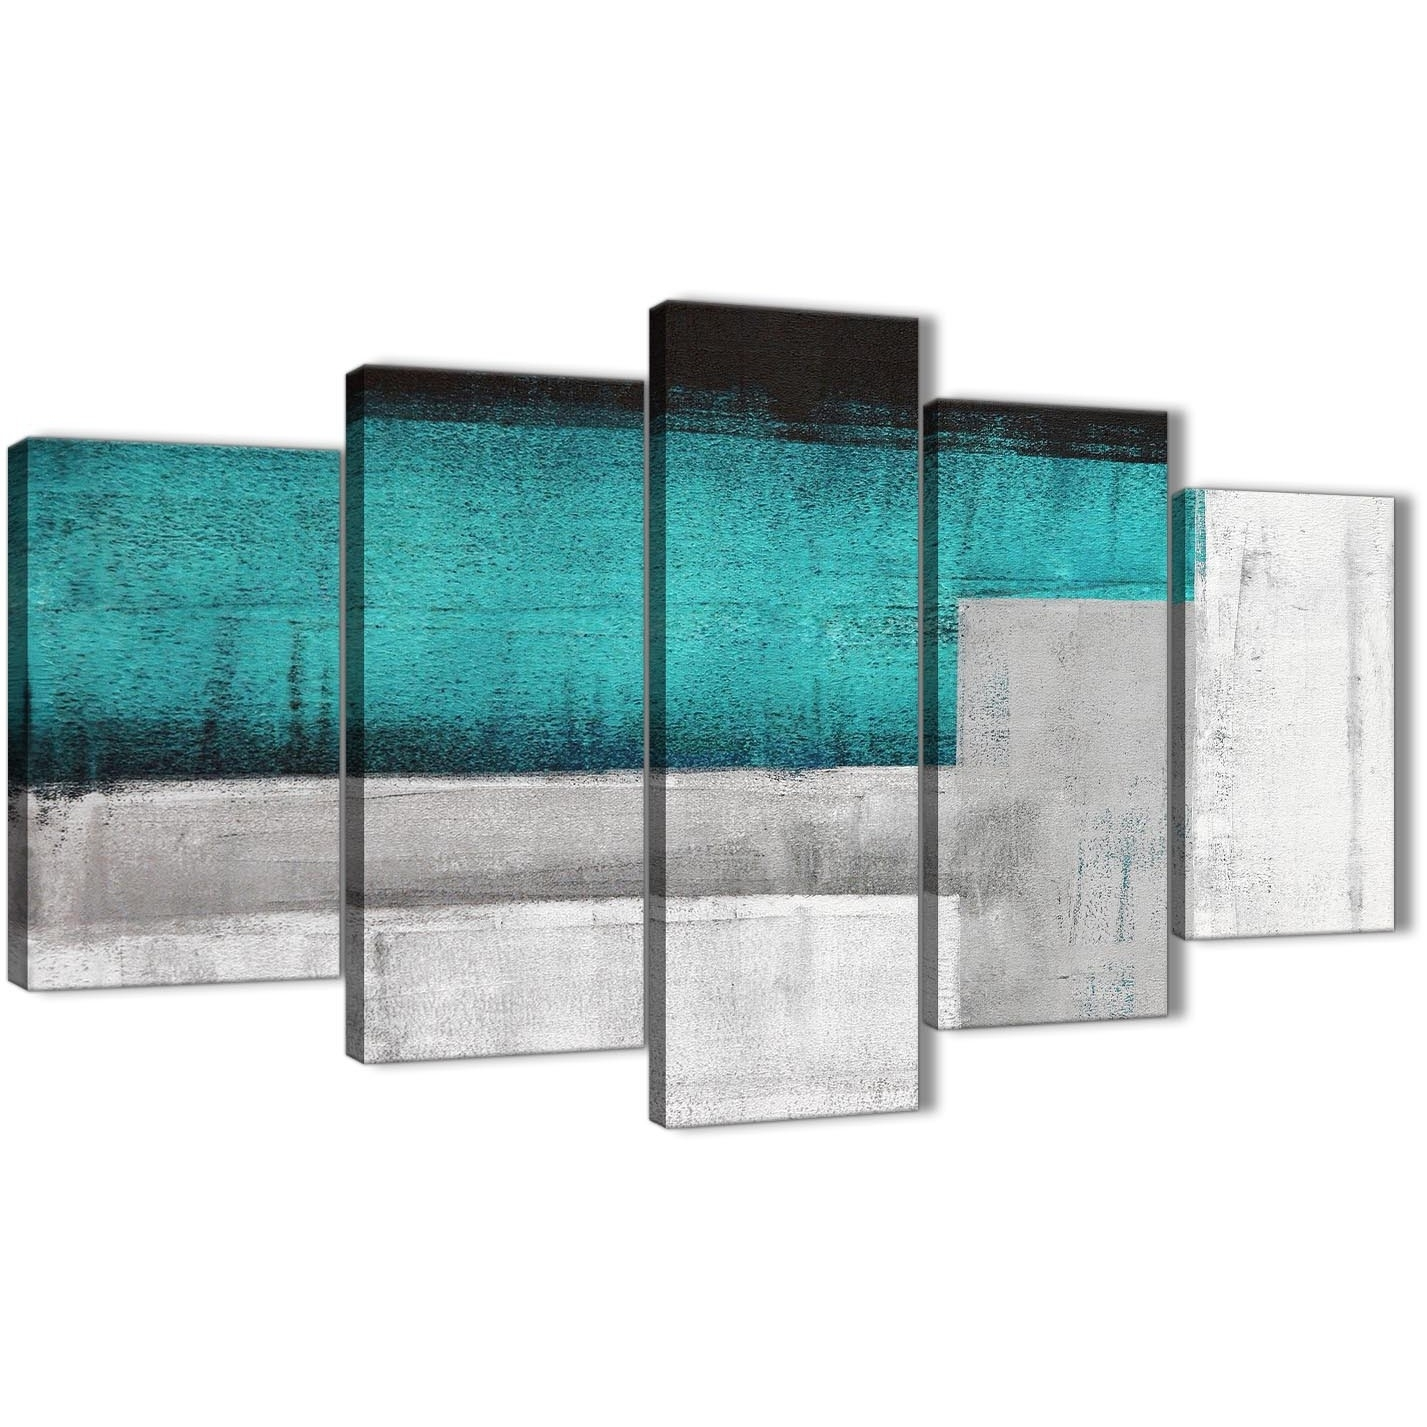 5 Panel Teal Turquoise Grey Painting Abstract Office Canvas Wall Art In Best And Newest Oversized Teal Canvas Wall Art (View 14 of 20)